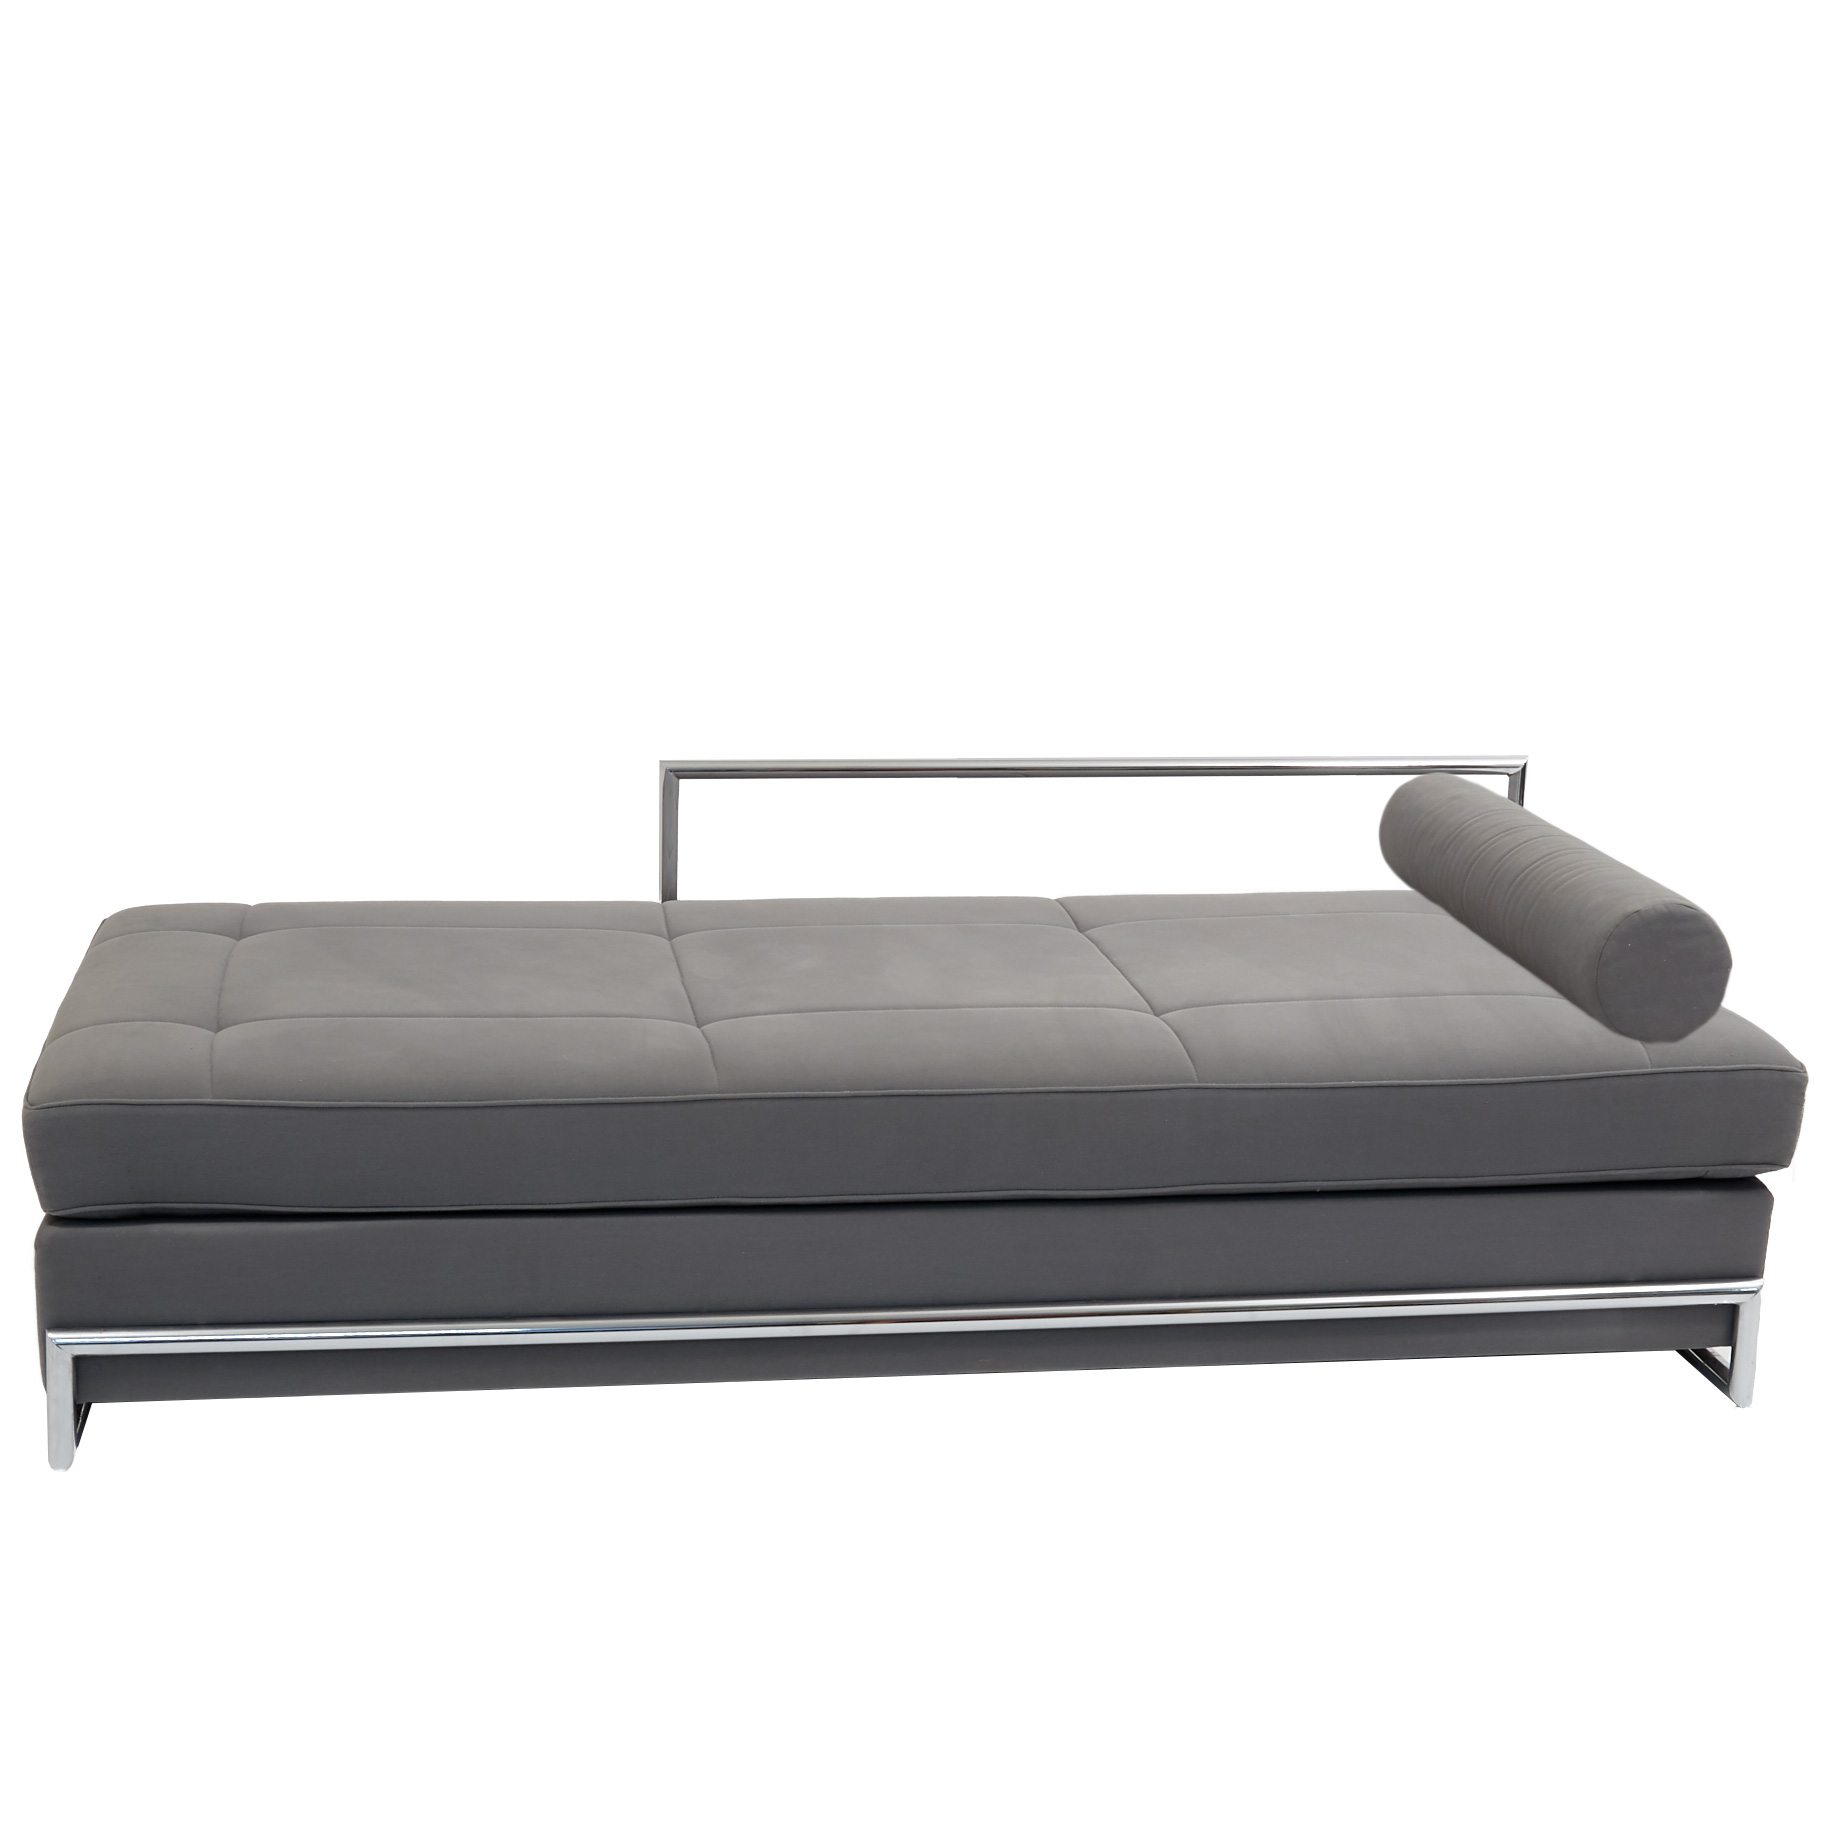 eileen gray daybed von cassina mit nackenrolle m bel z rich vintagem bel. Black Bedroom Furniture Sets. Home Design Ideas